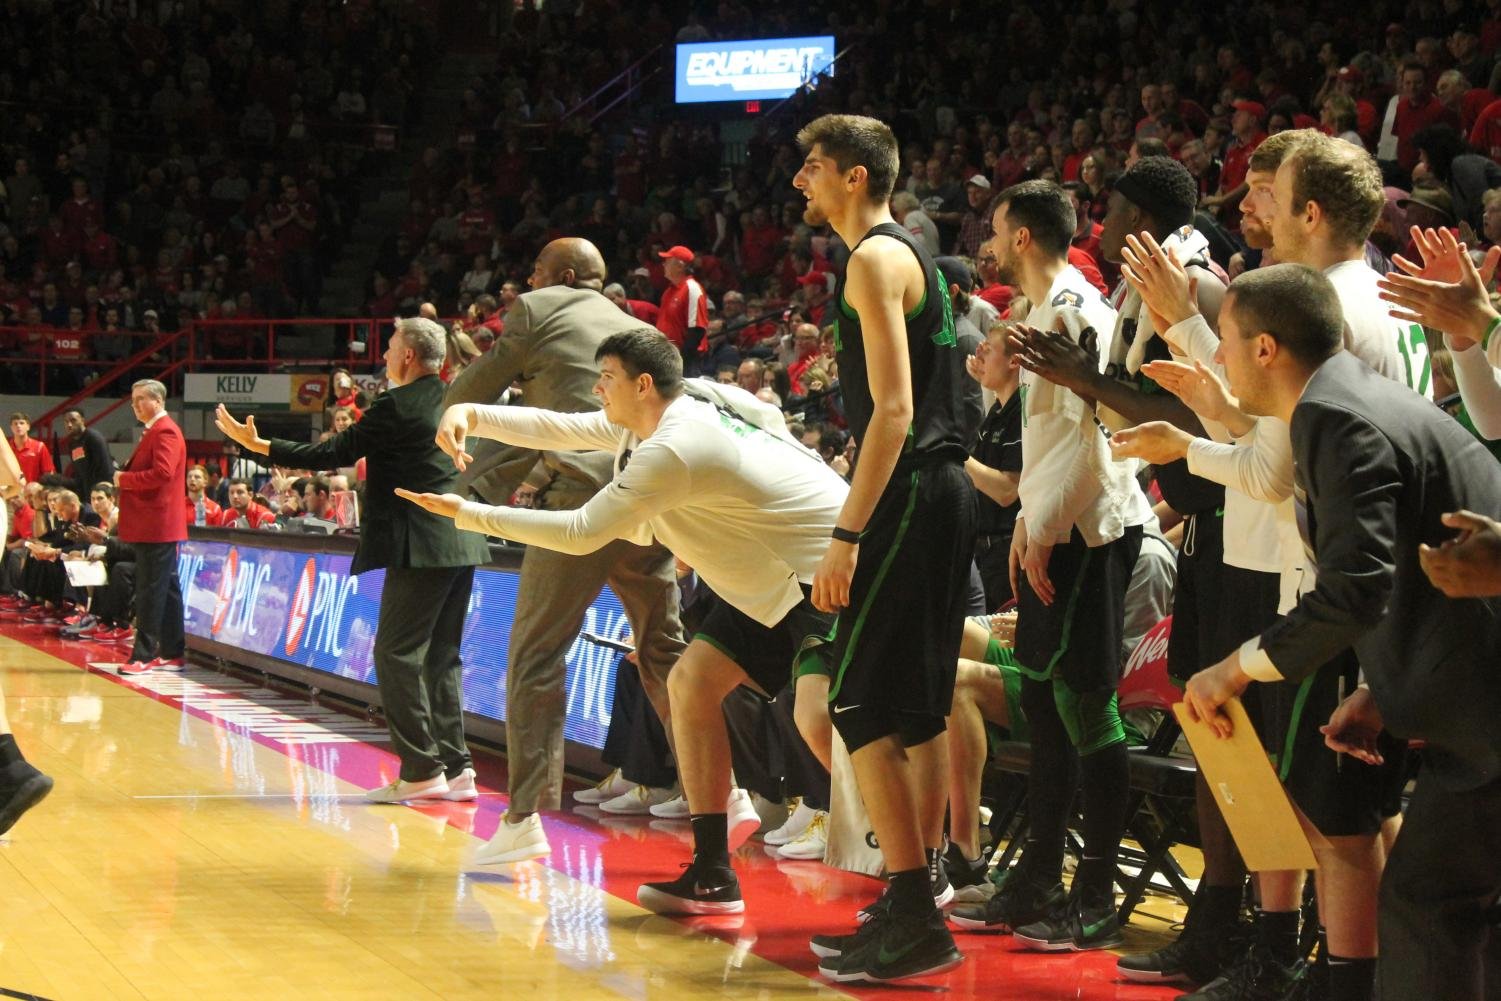 Marshall%27s+bench+celebrates+a+three+point+shot+to+take+the+lead+late+in+the+game.+Senior+forward+Milan+Mijovic+makes+a+celebratory+gesture.